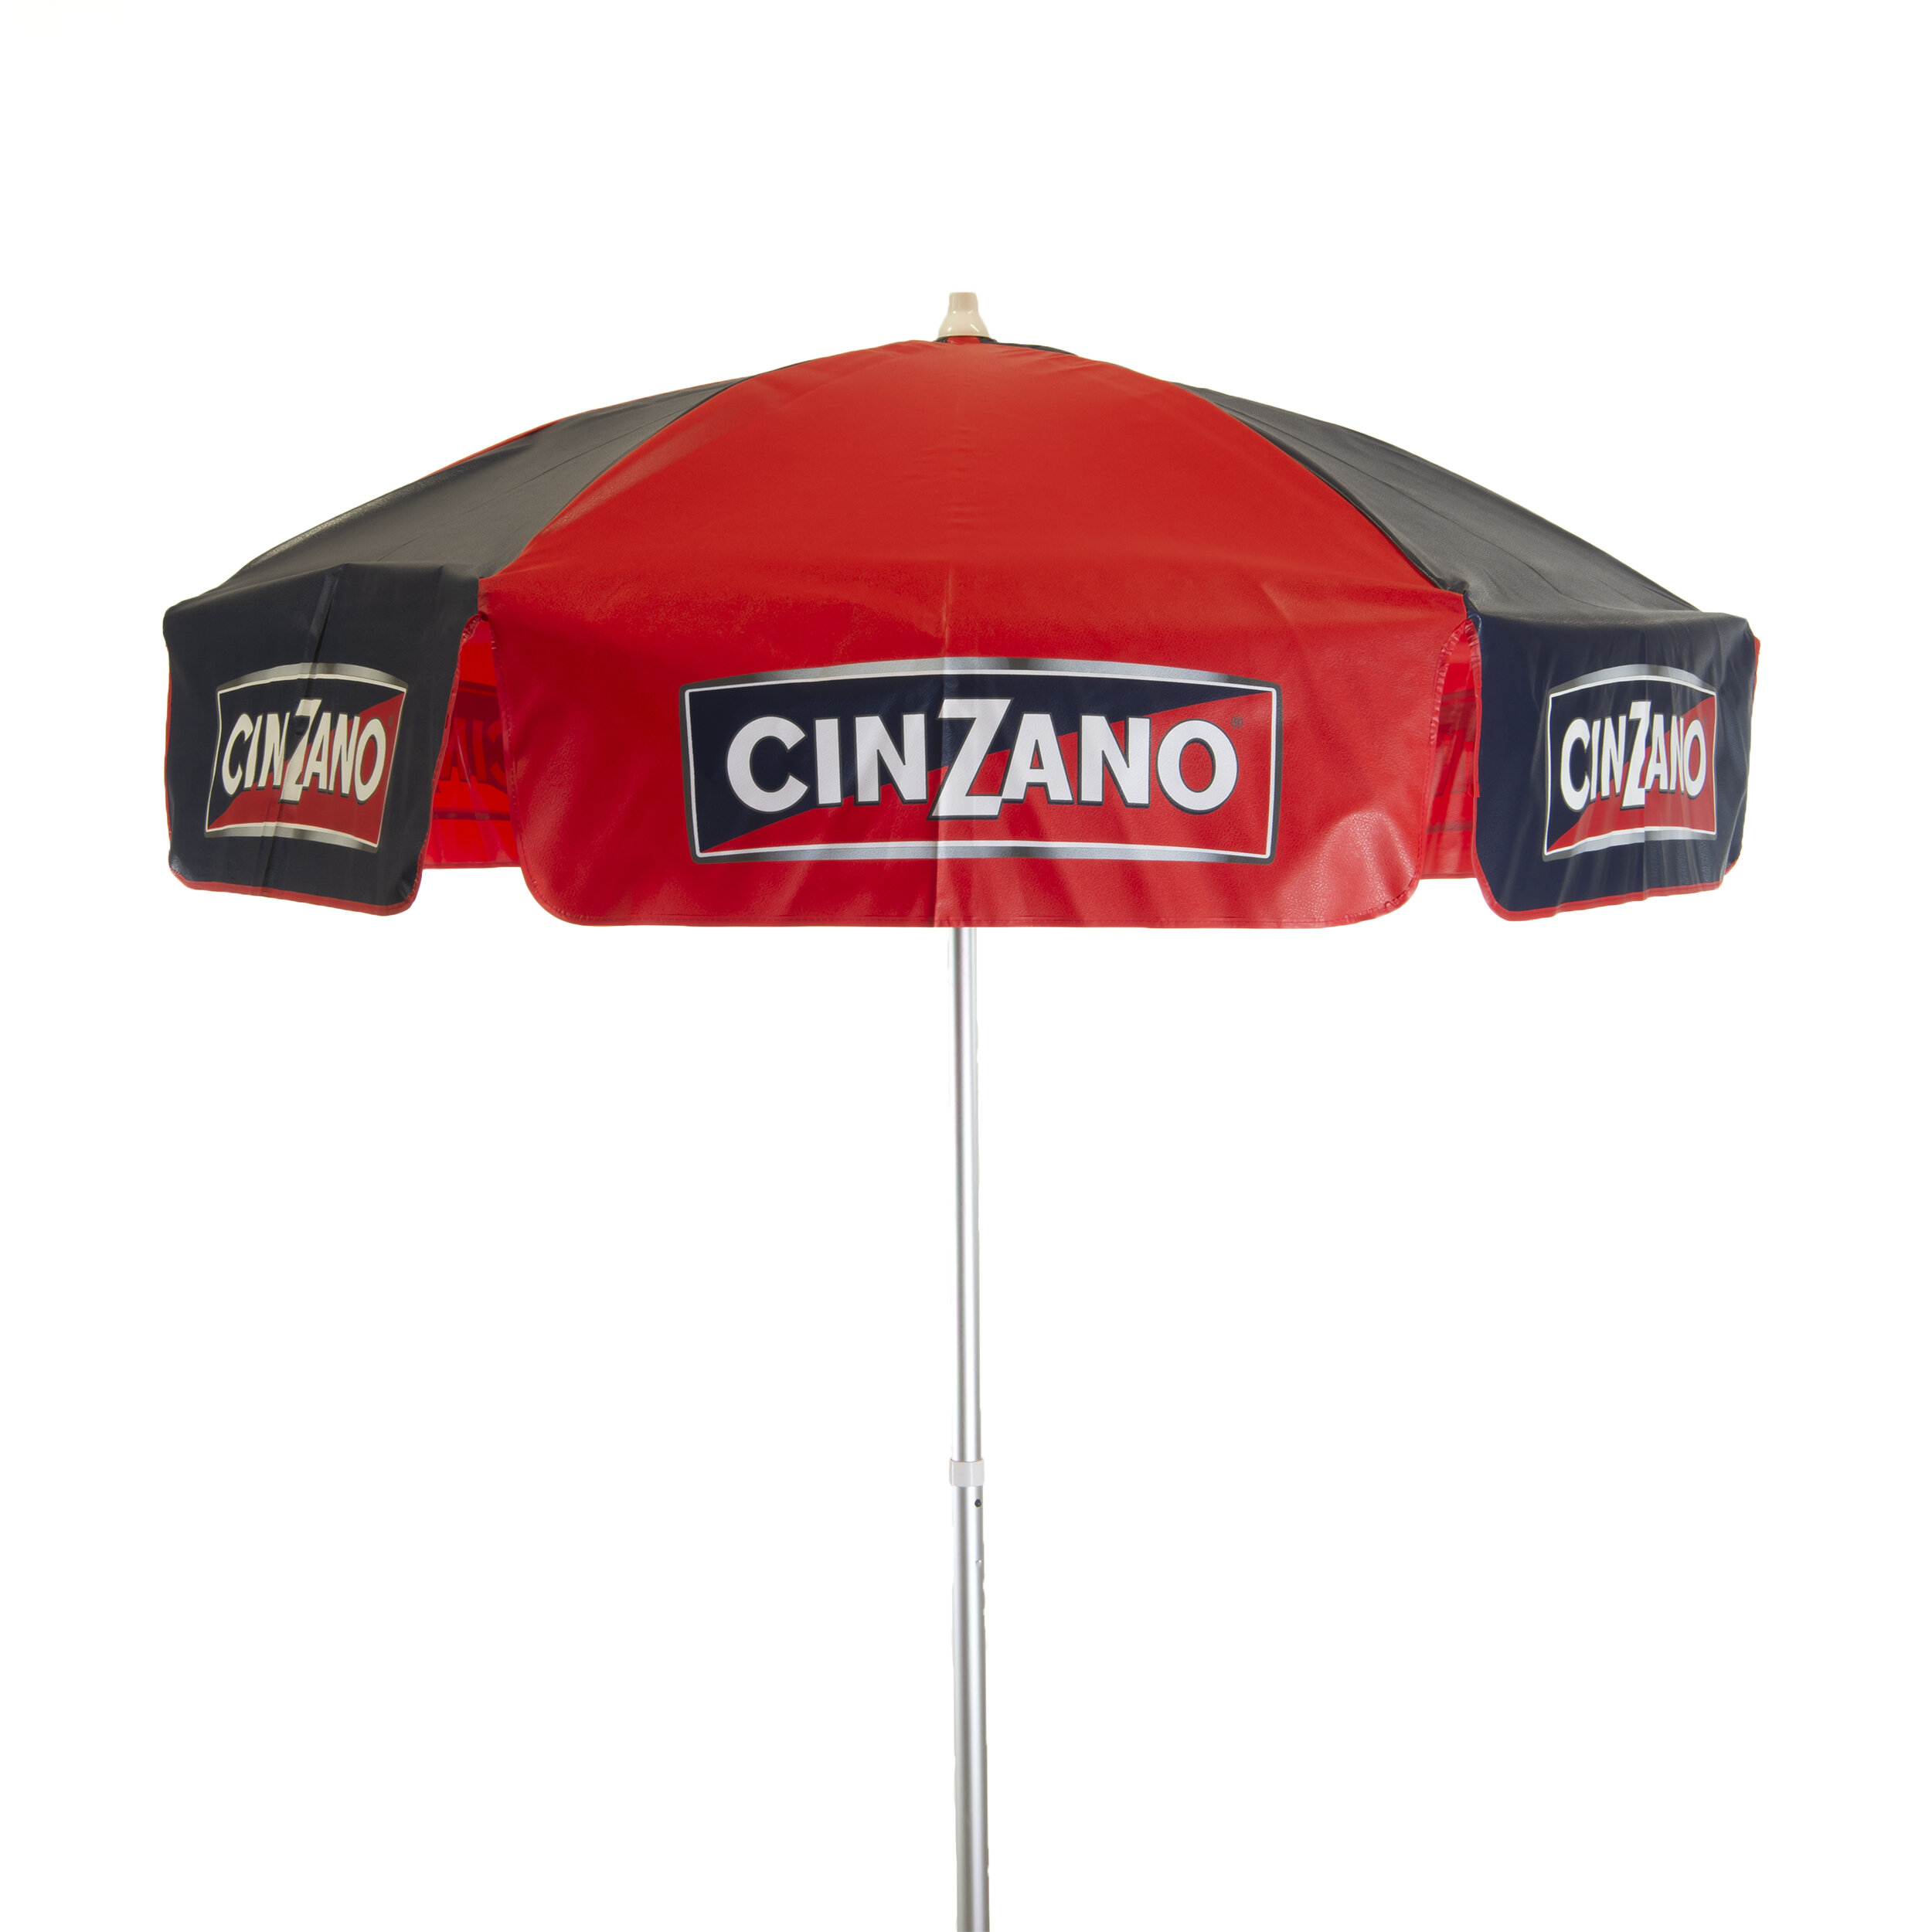 6 ft Campari BEACH Umbrella 3 Position Tilt Vinyl Italian beverage Red White